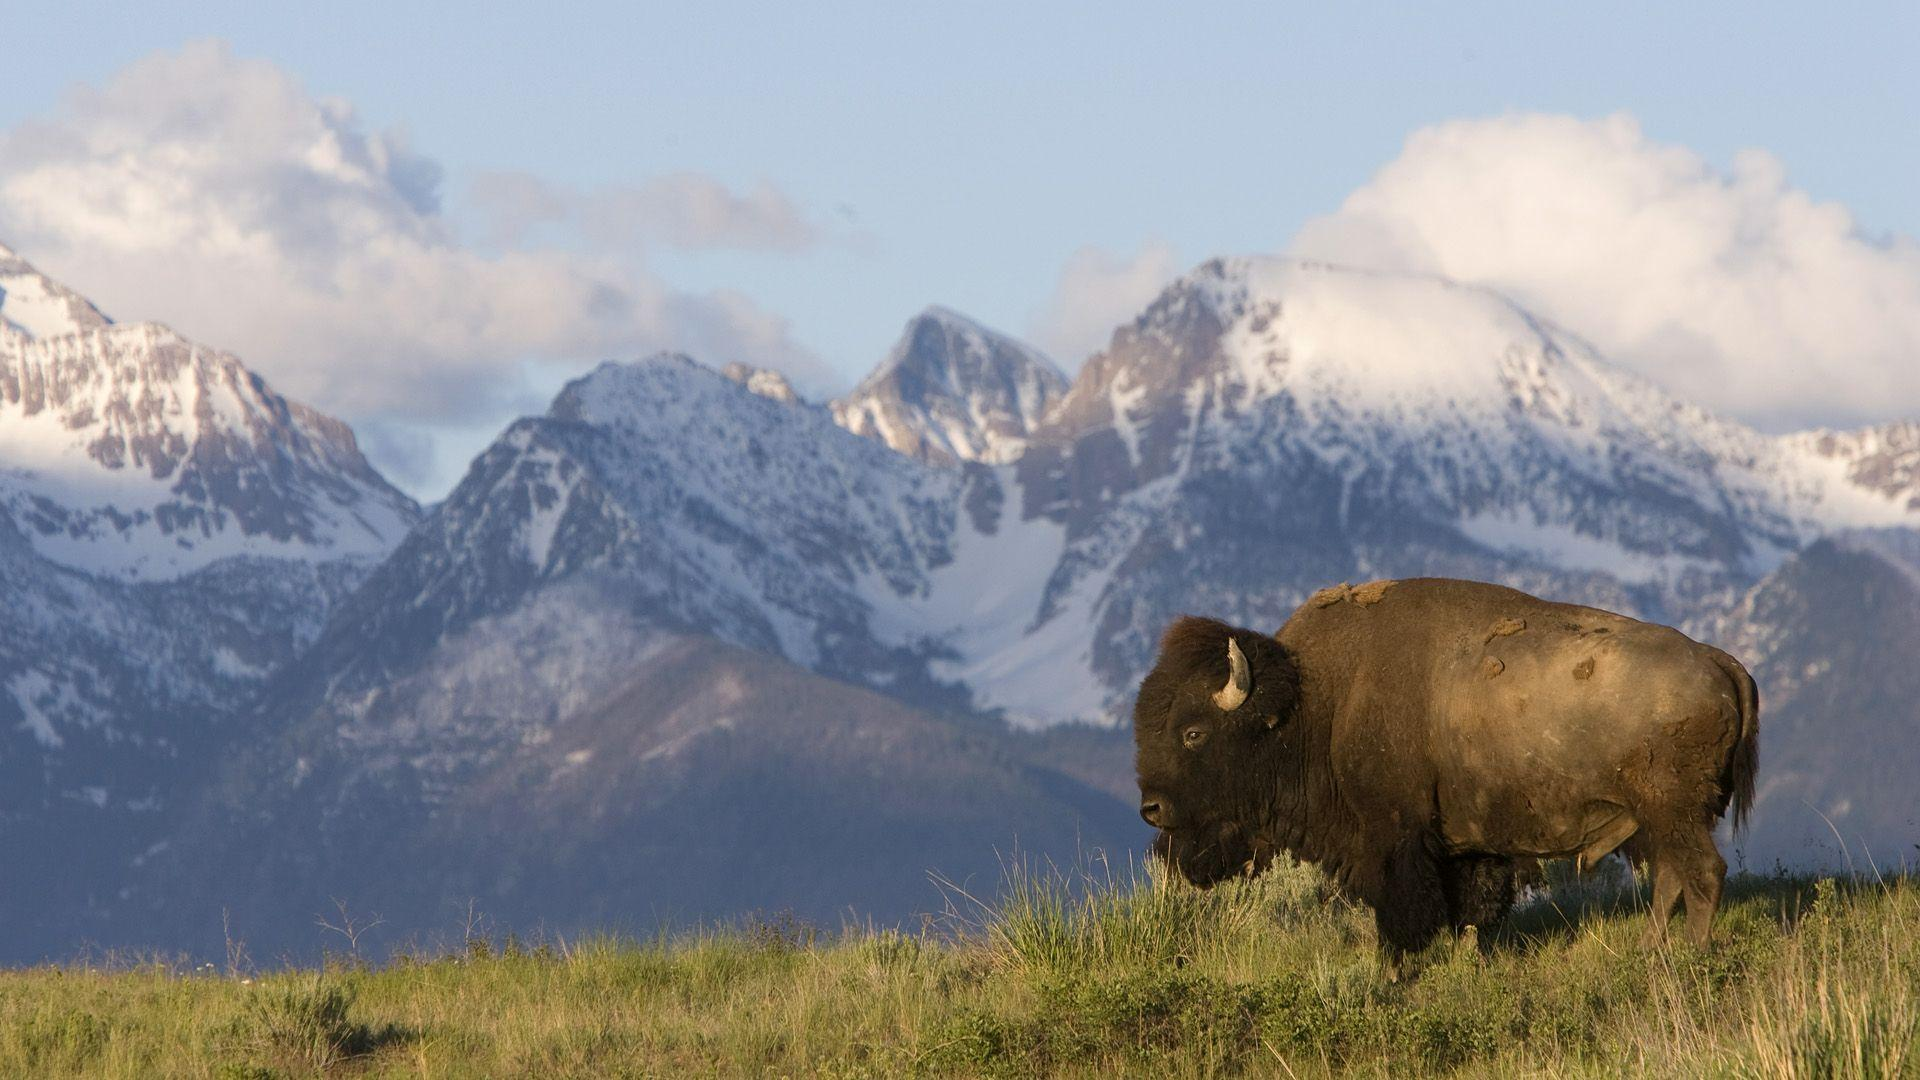 Bison Wallpapers HD 30865 1920x1080 px ~ HDWallSource